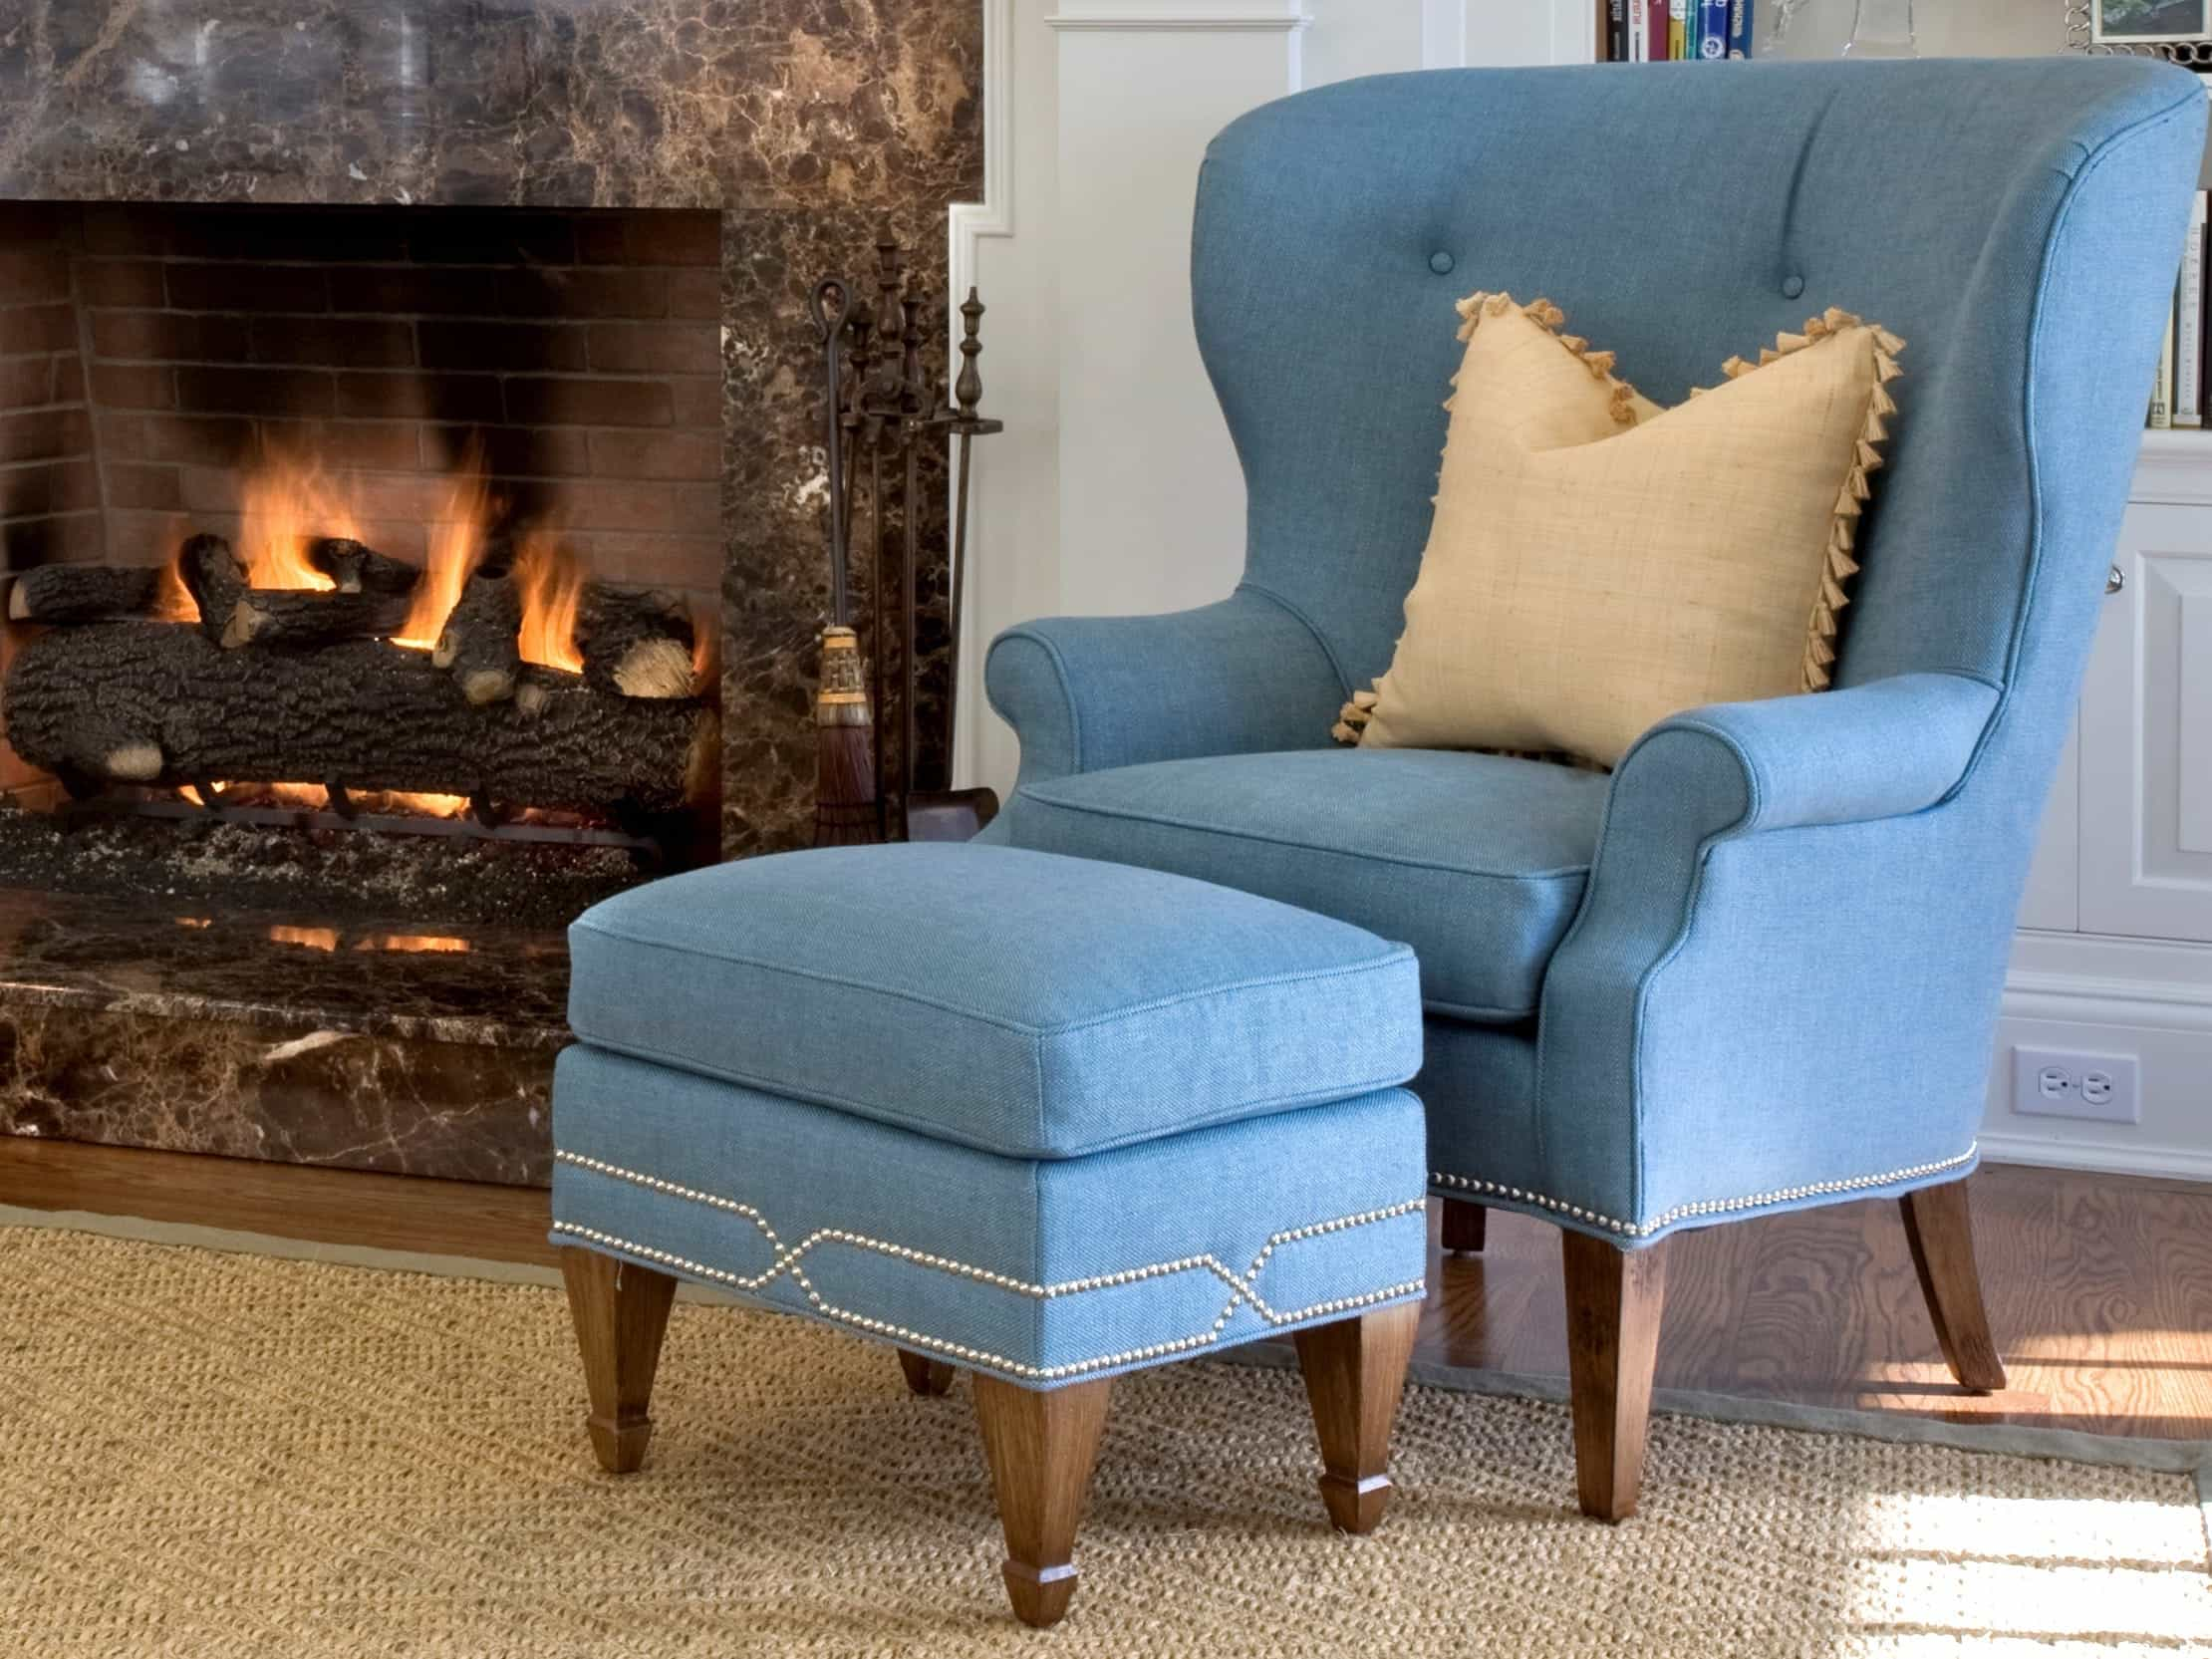 Featured Image of Cozy Queen Anne Chair For Living Room